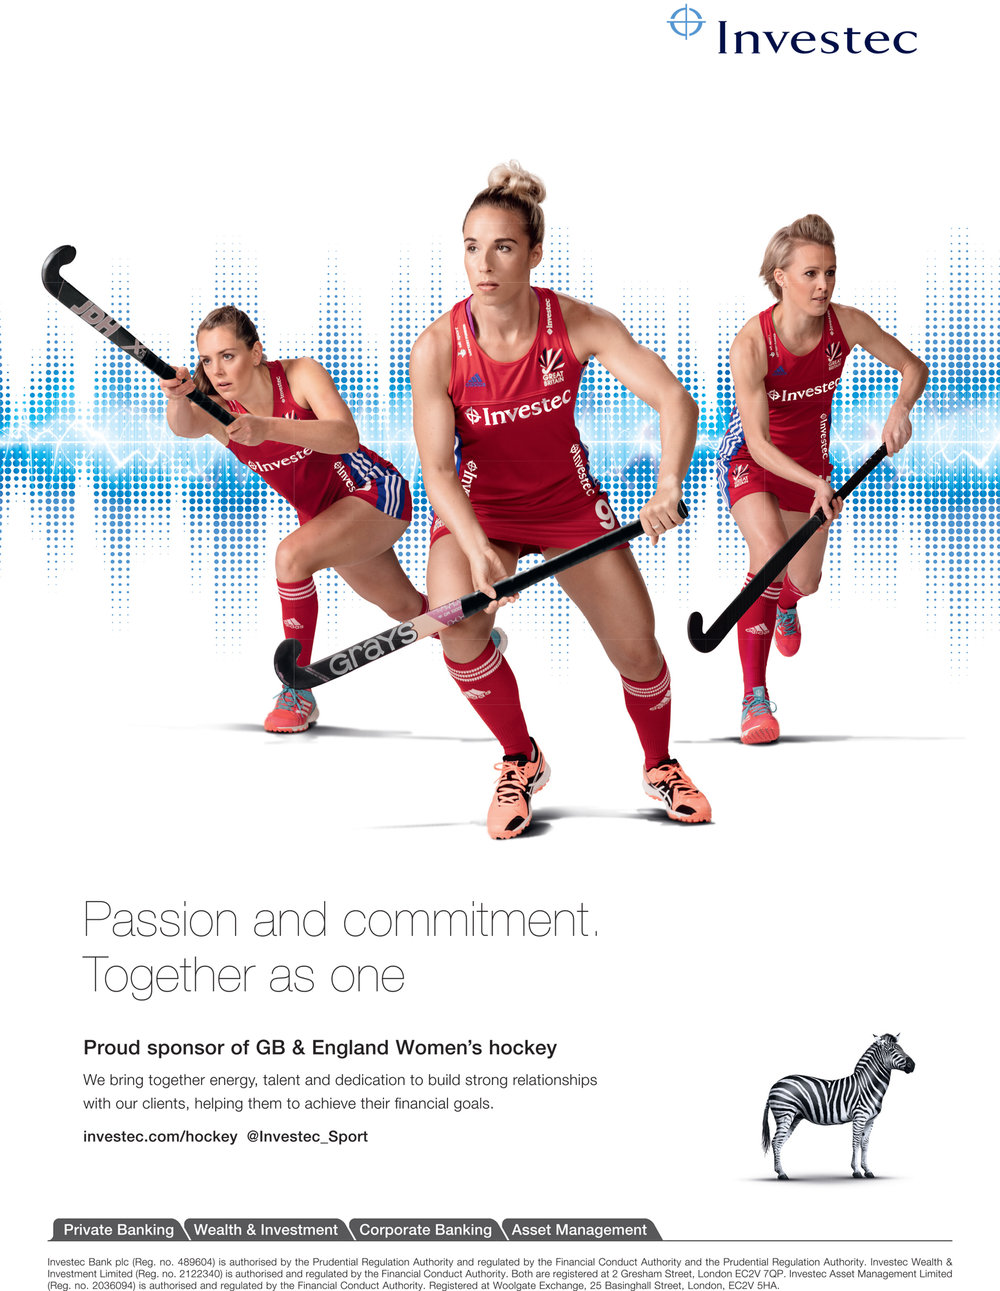 C39365_Group_Hockey_England-programme_297x210_Jul17_v1_TS.jpg